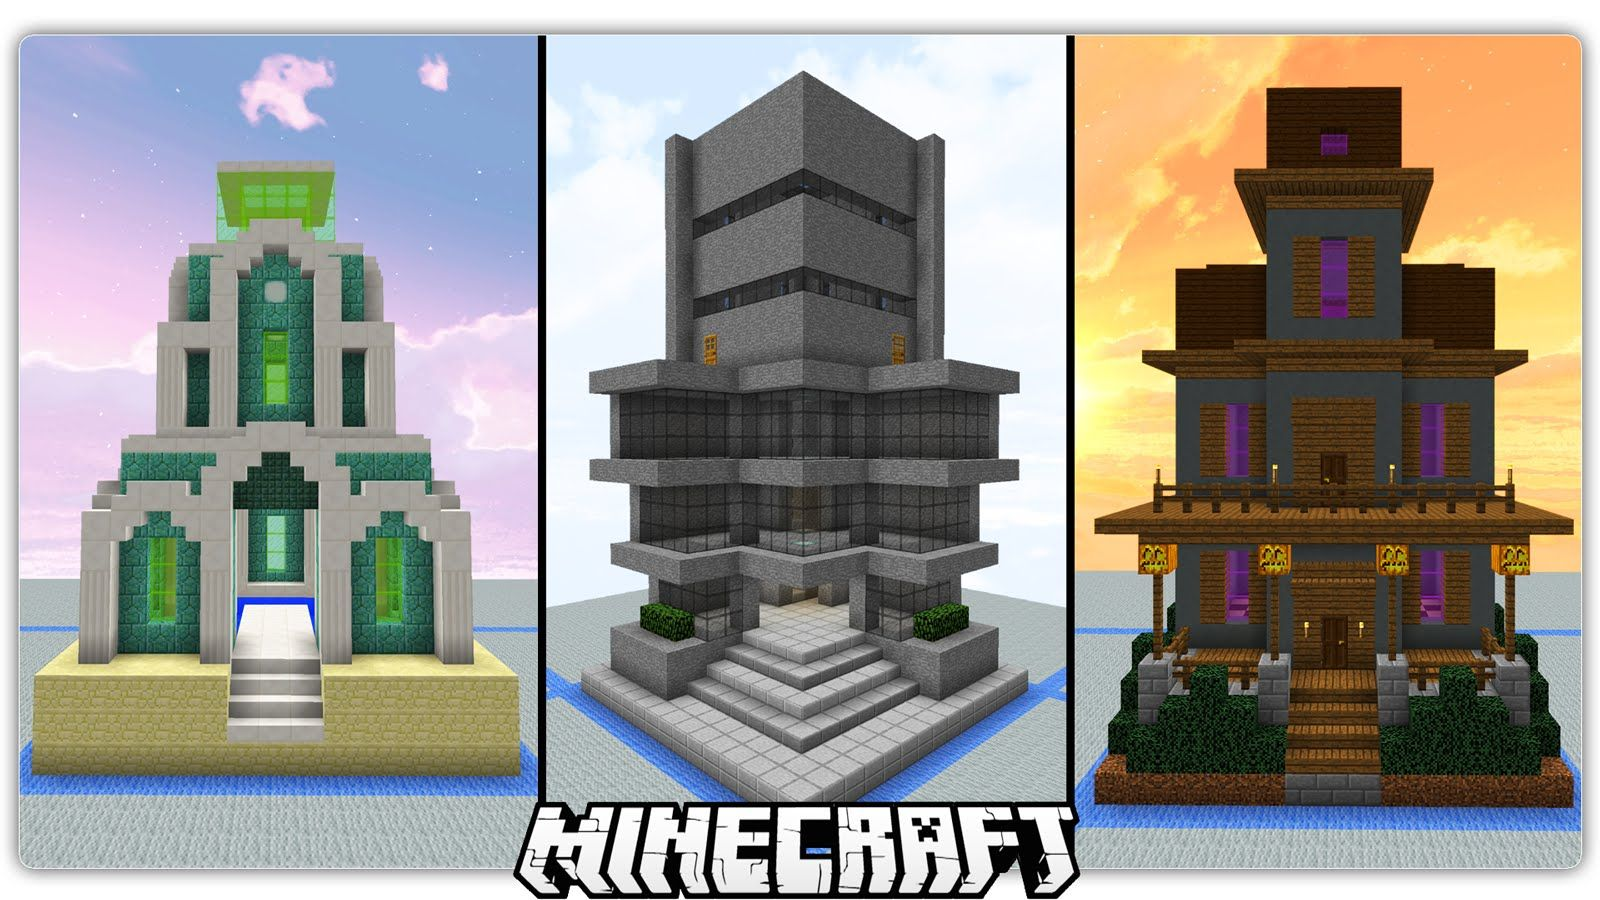 40 Chunk Sized Minecraft Buildings With Images Minecraft